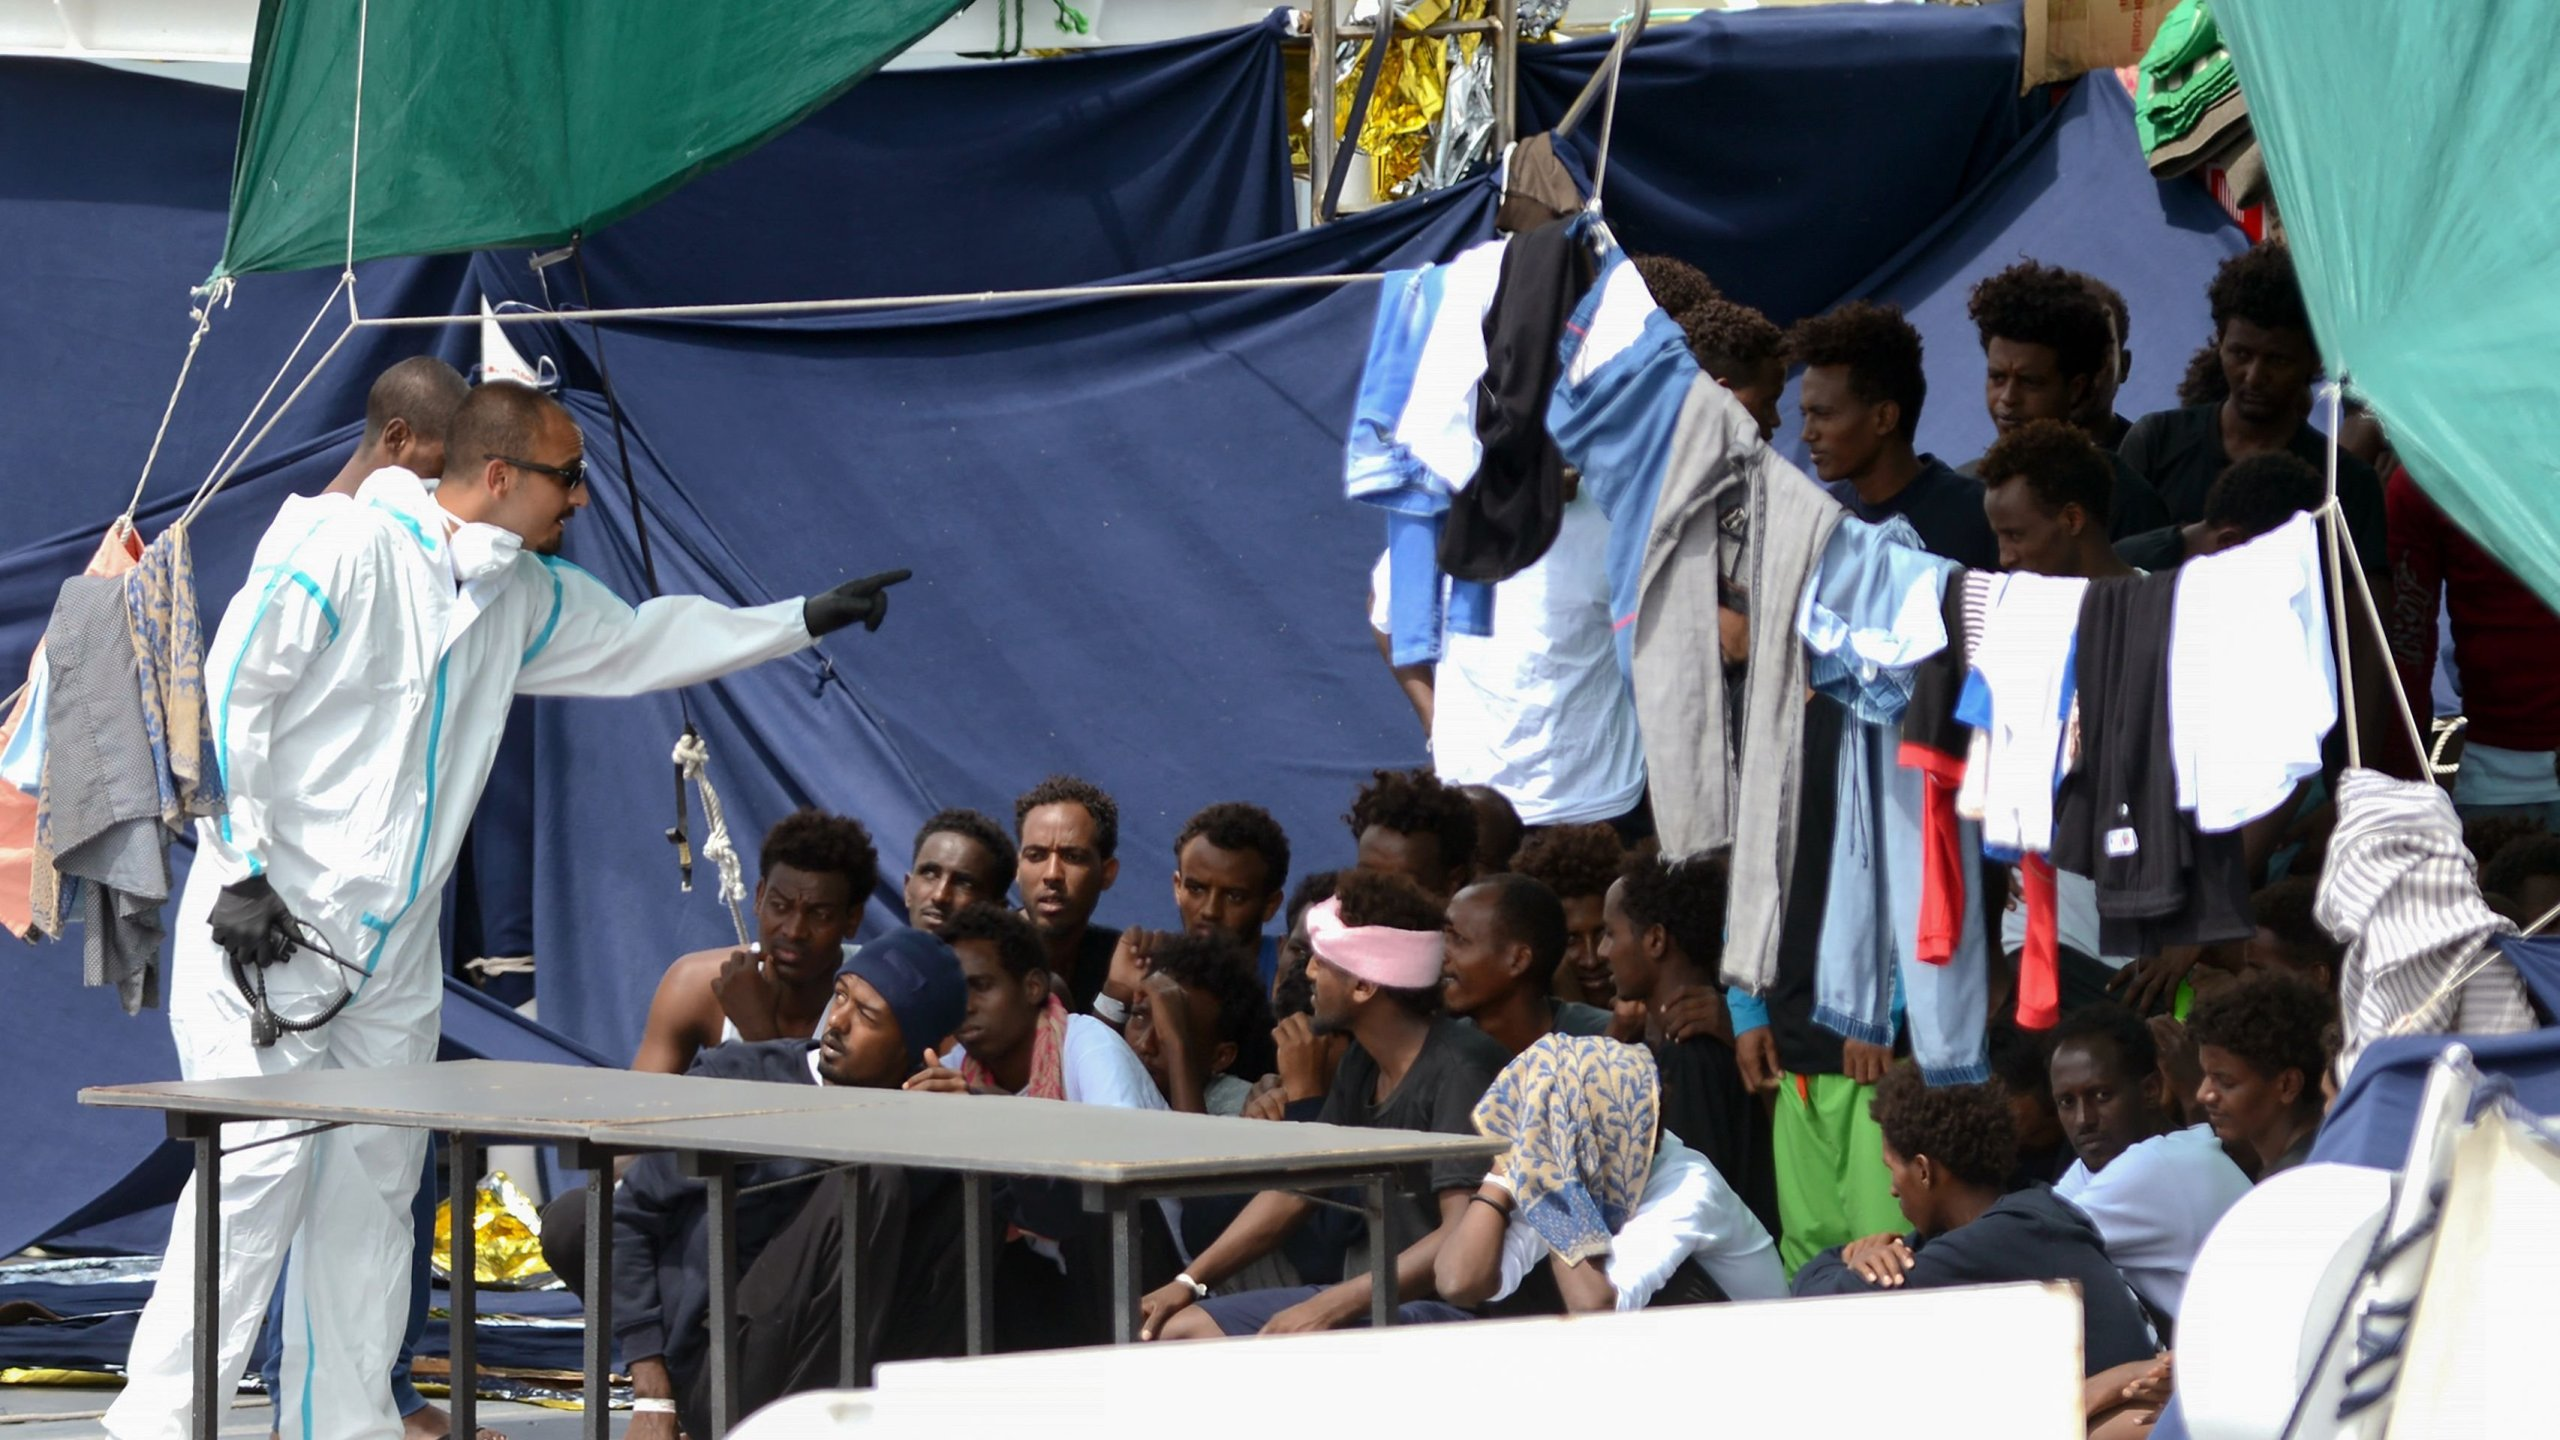 An official gestures towards migrants on the deck of the Italian Coast Guard ship Ubaldo Diciotti in the Sicilian port of Catania, on Aug. 23, 2018. (Credit: AFP/Getty Images via CNN)